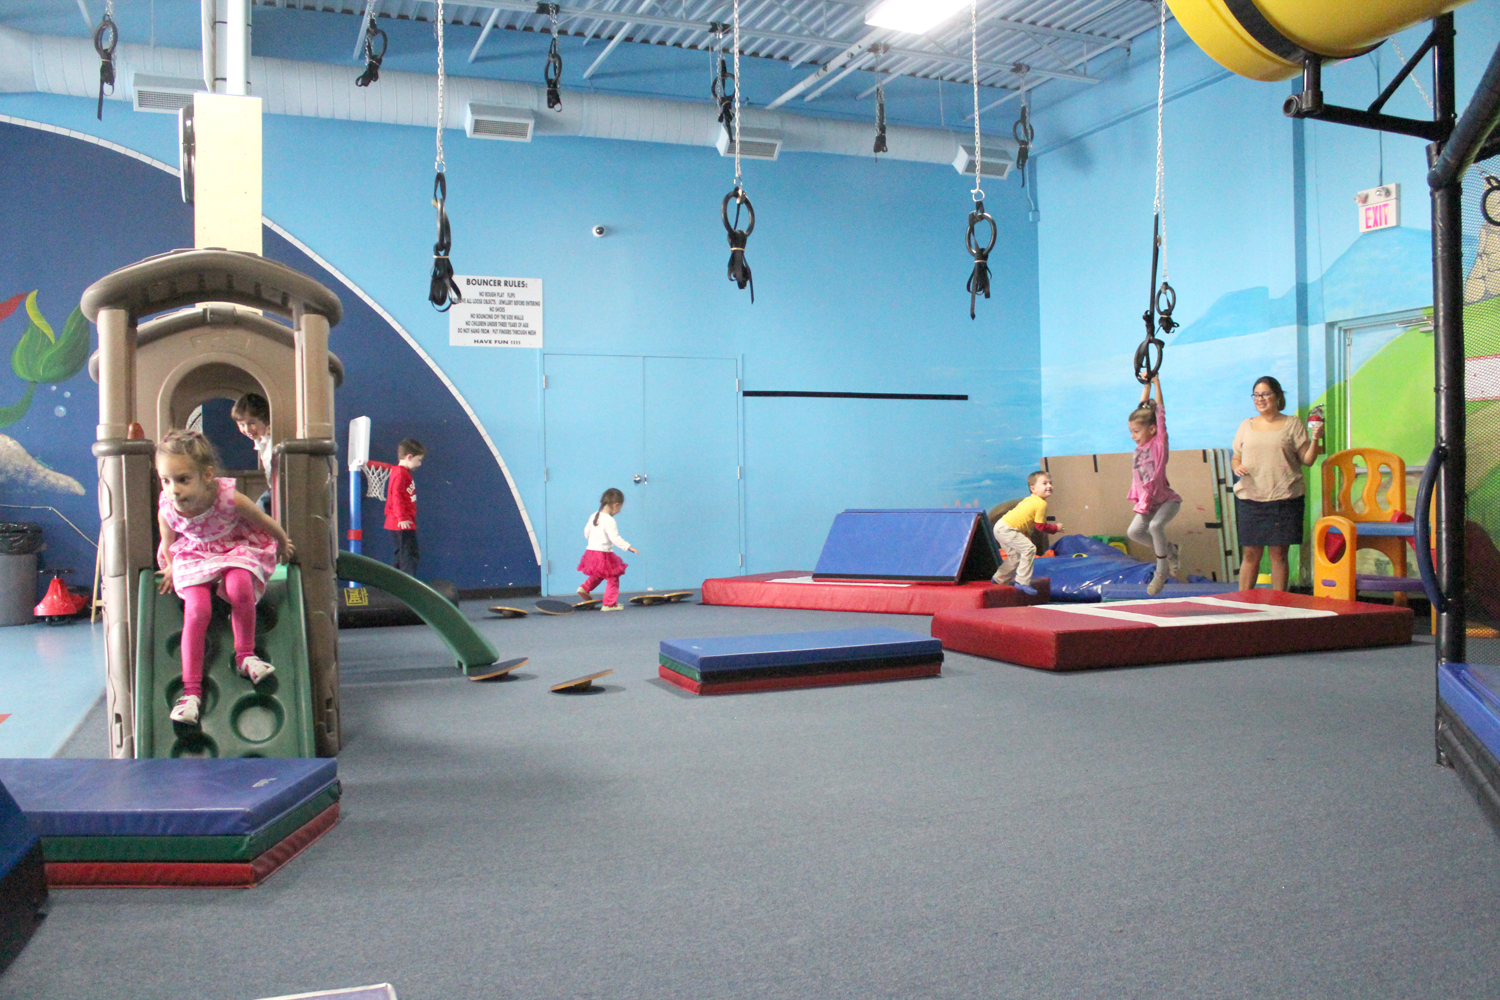 Rules Policies Toronto Indoor Playground Birthday Party Rooms